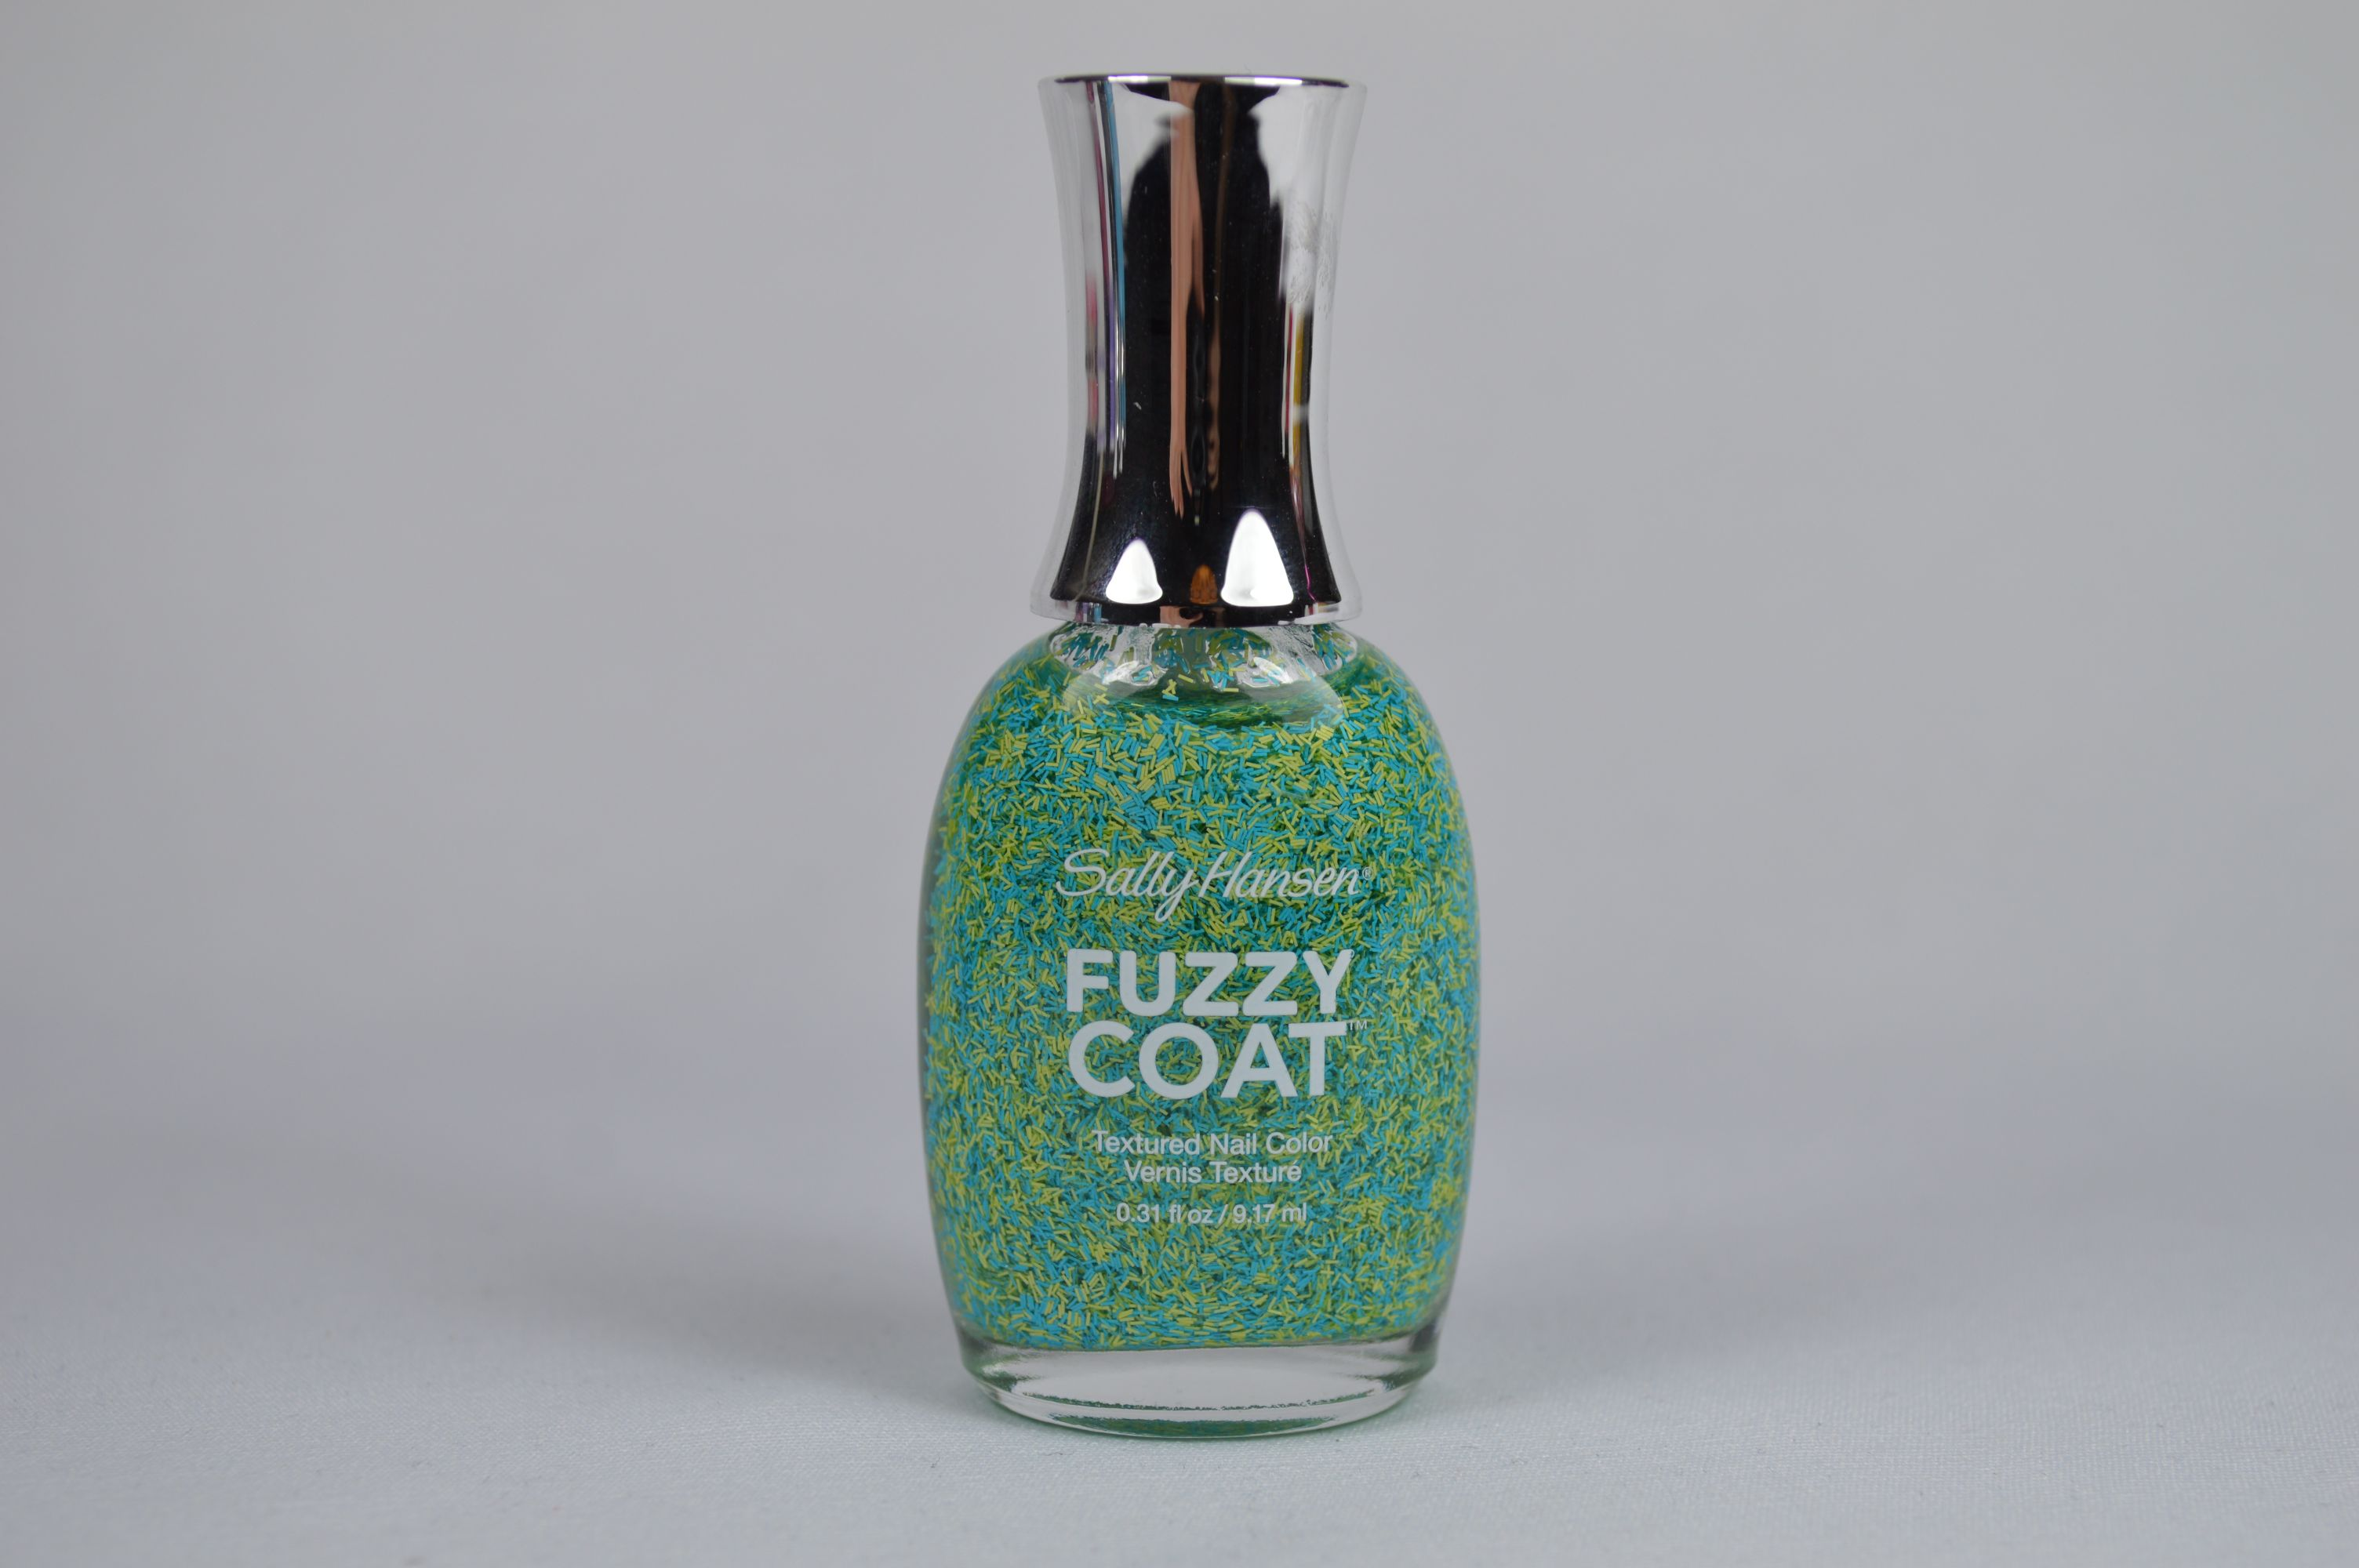 Fuzz-Sea Sally Hansen Fuzzy Coat